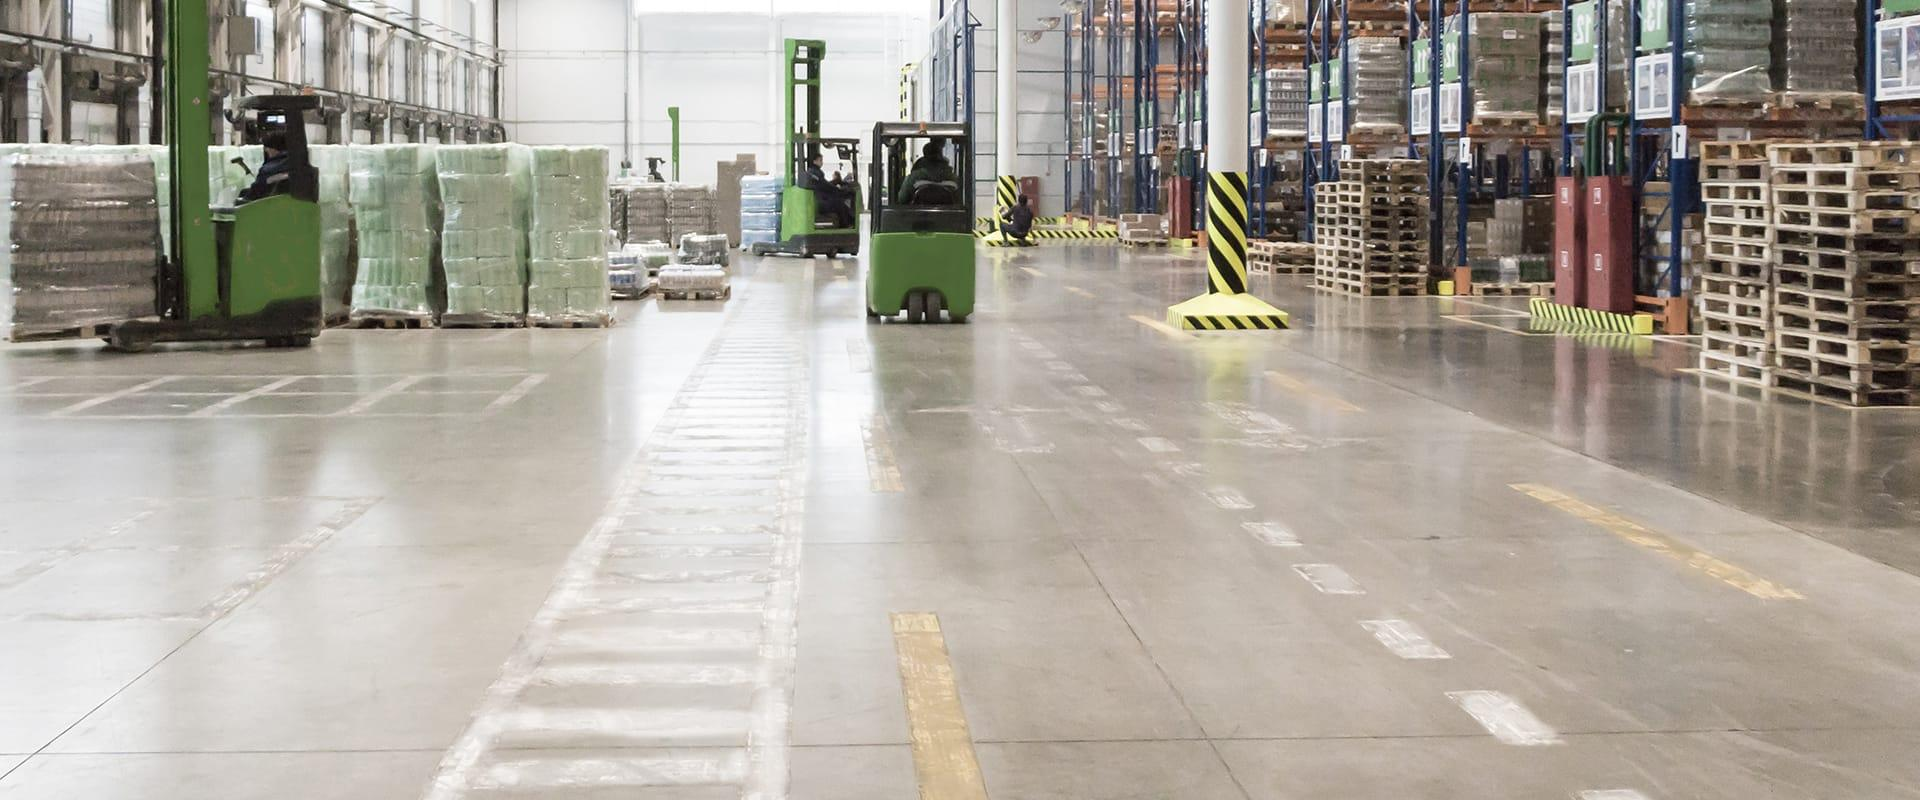 interior view of a warehouse in indianapolis indiana